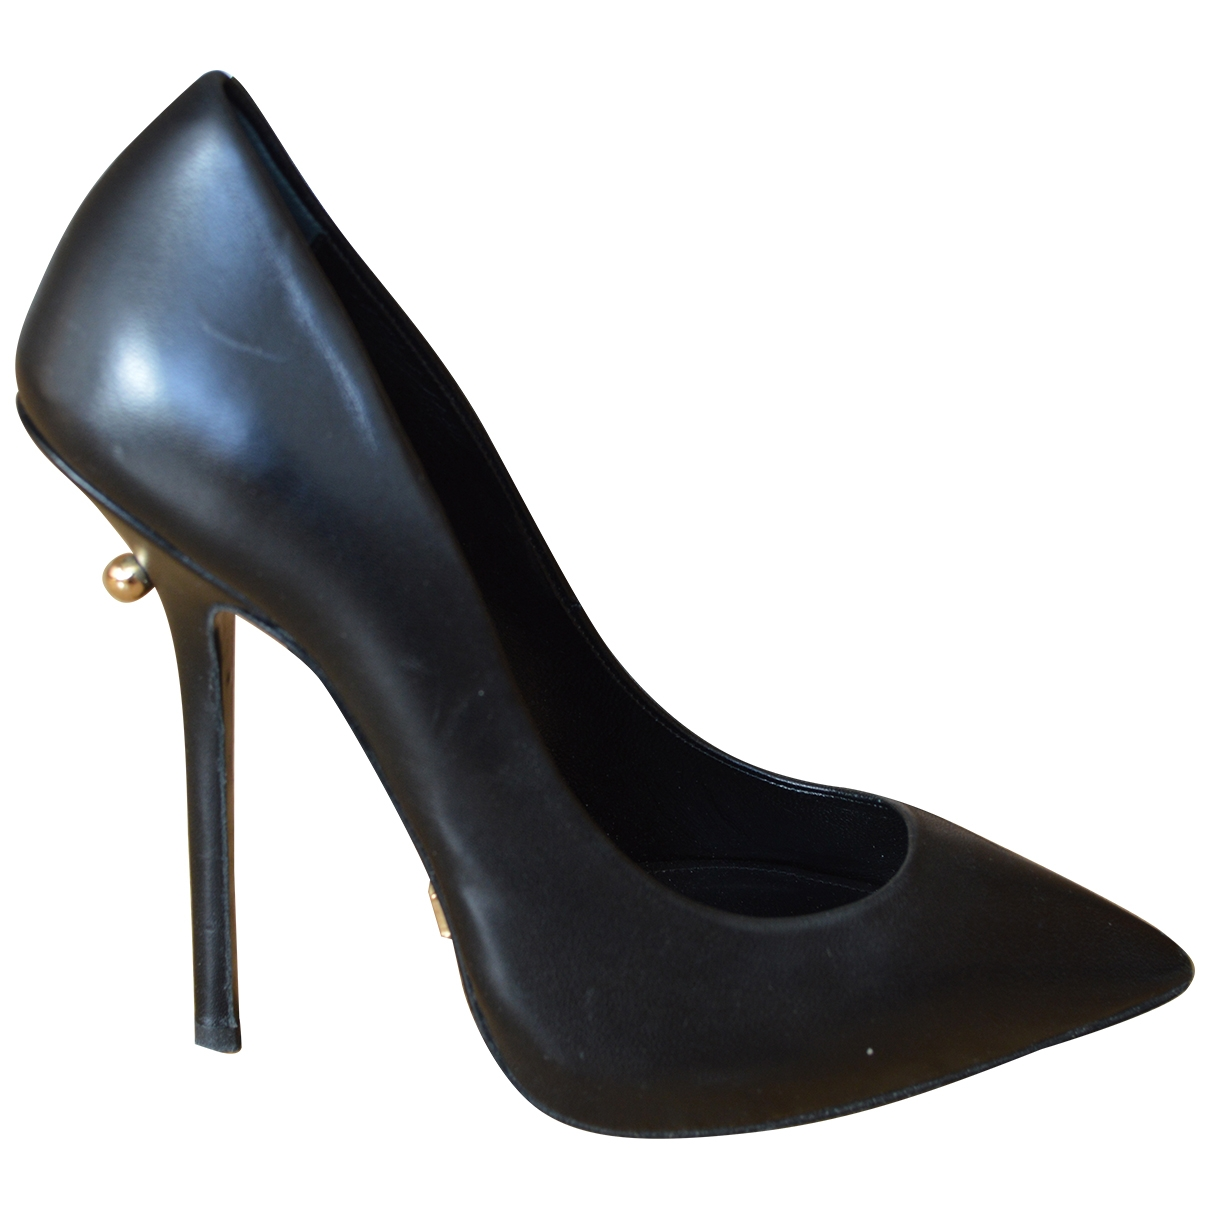 Dukas \N Black Leather Heels for Women 37 EU